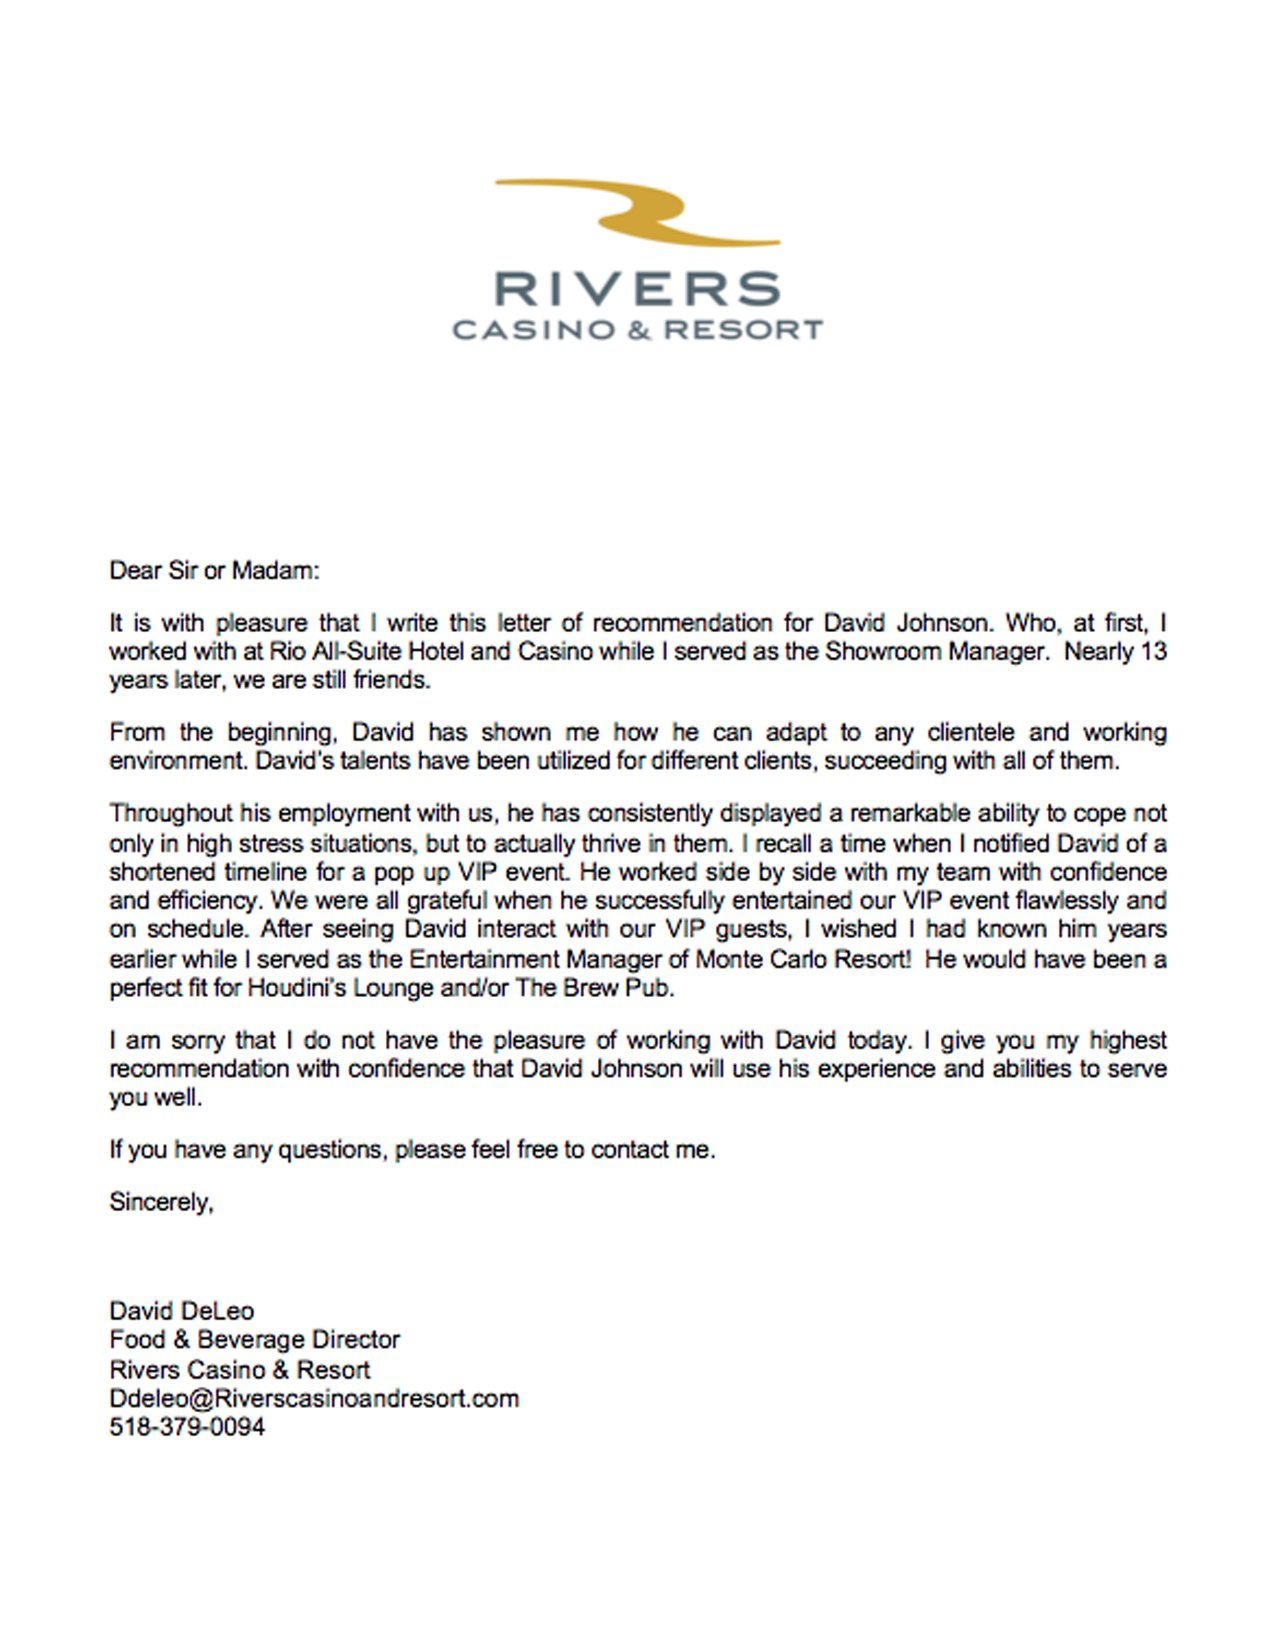 rivers letter